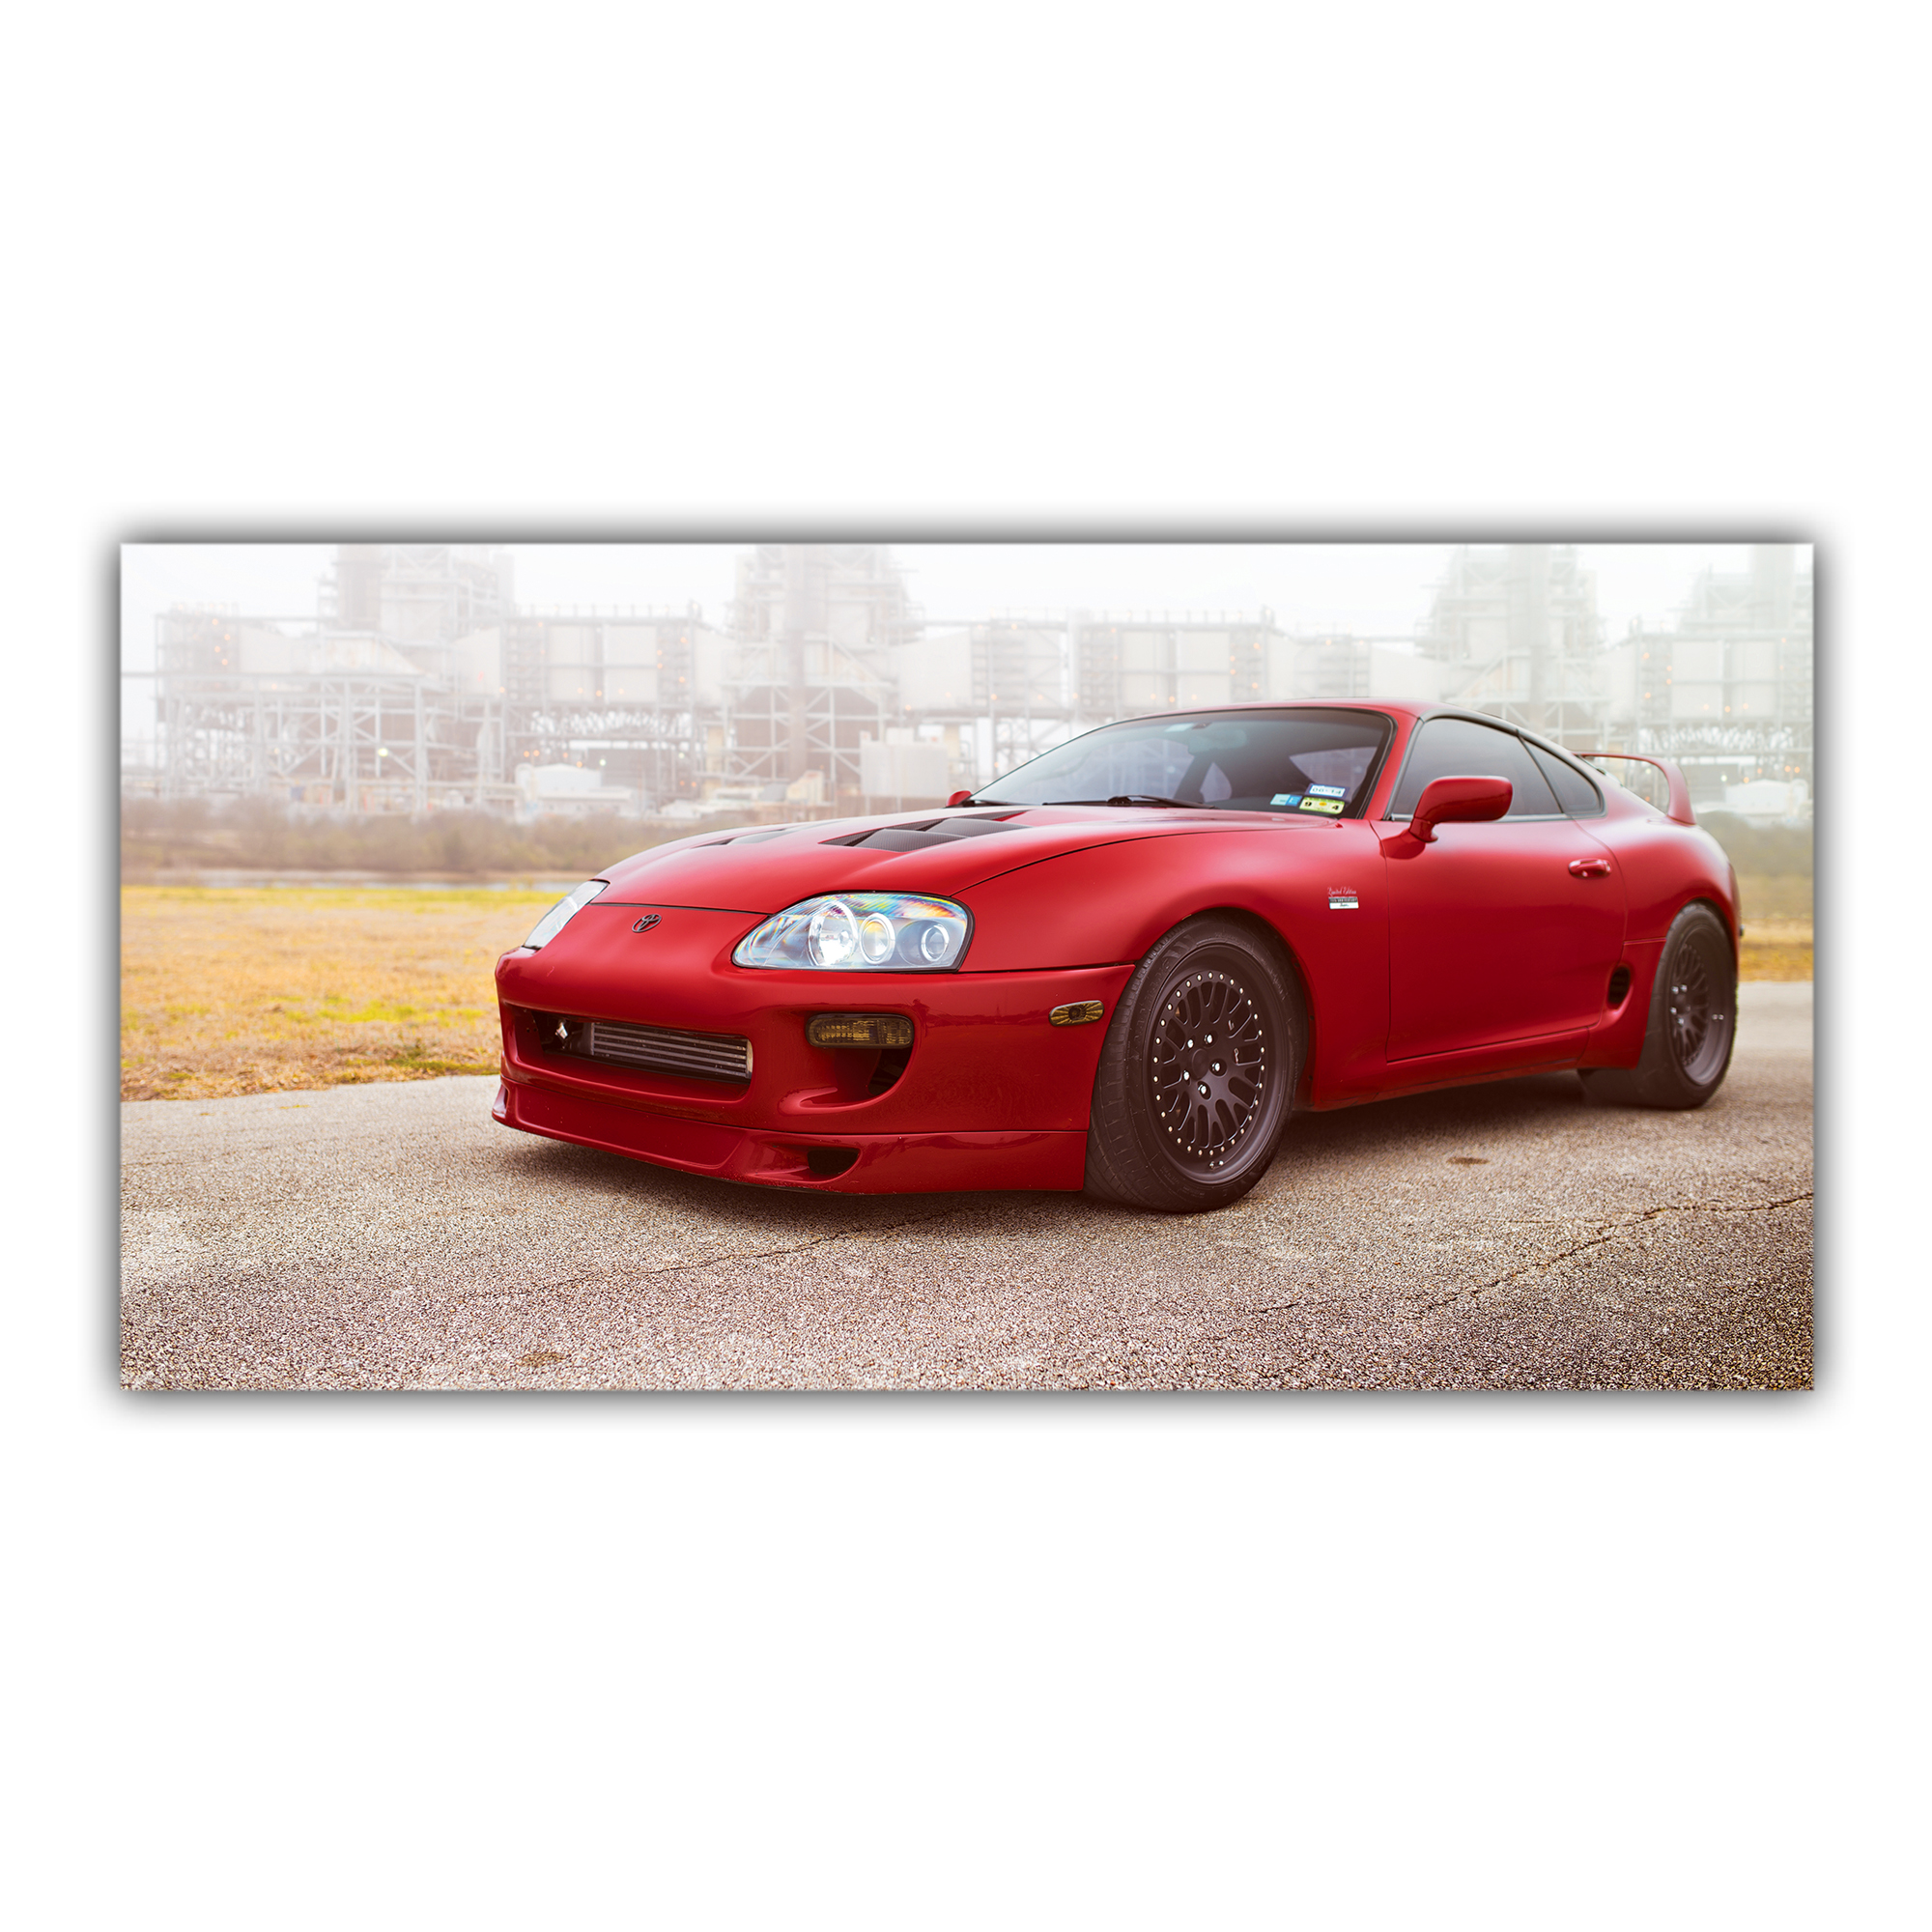 Toyota Supra Mark IV. Fast and Furious